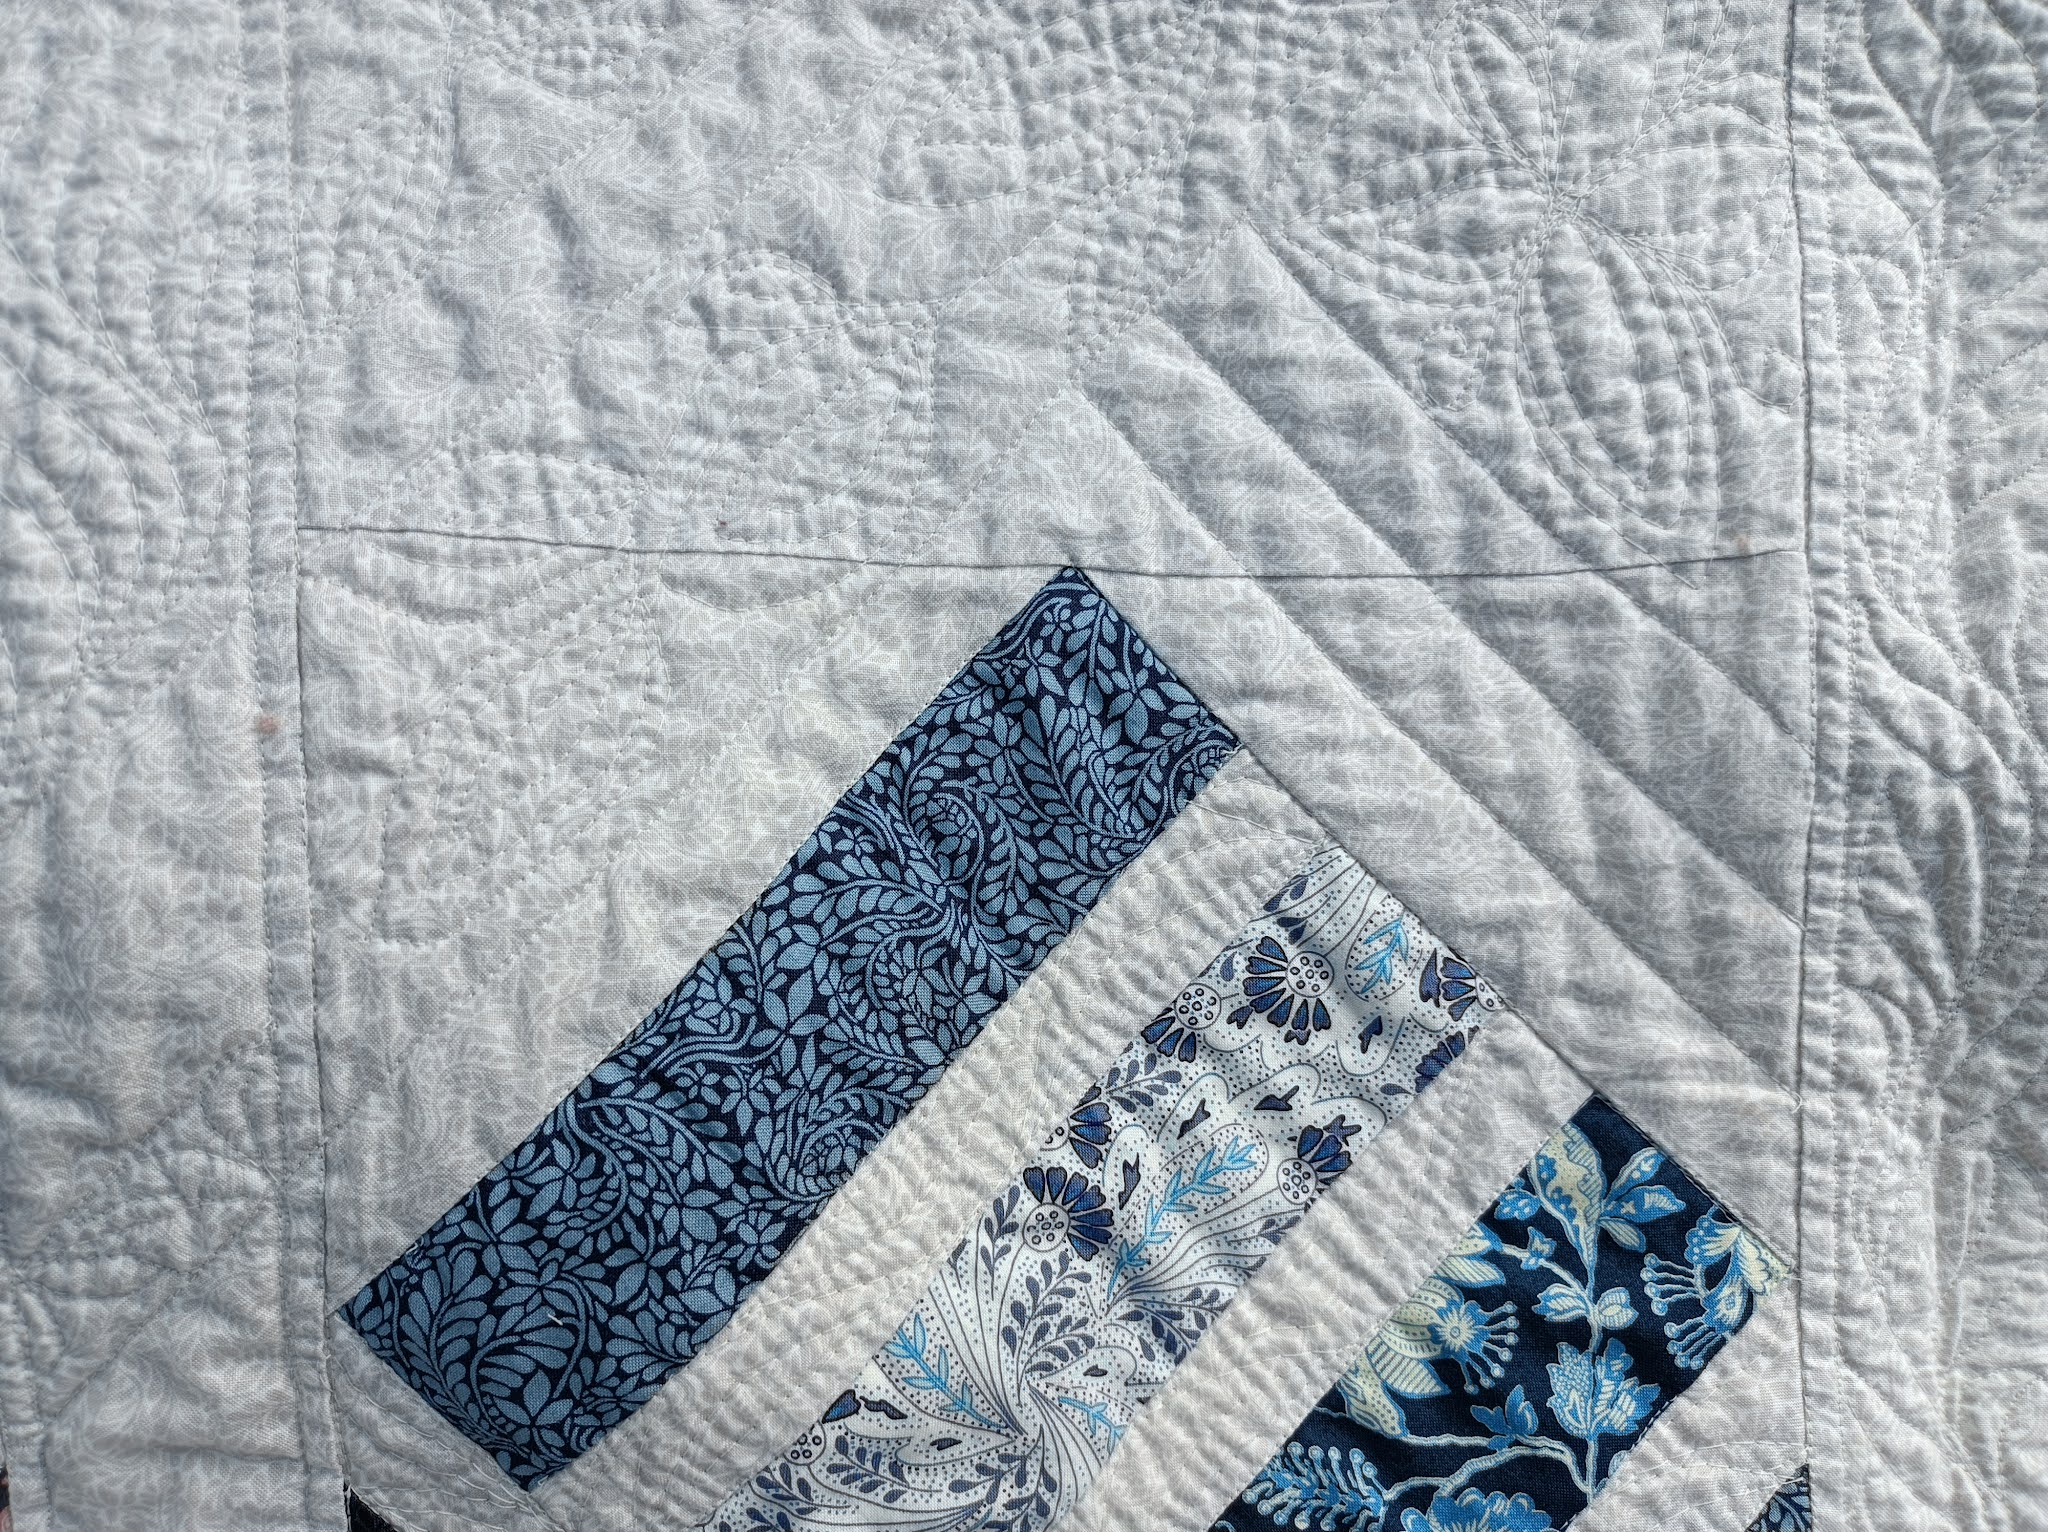 Binding a large quilt